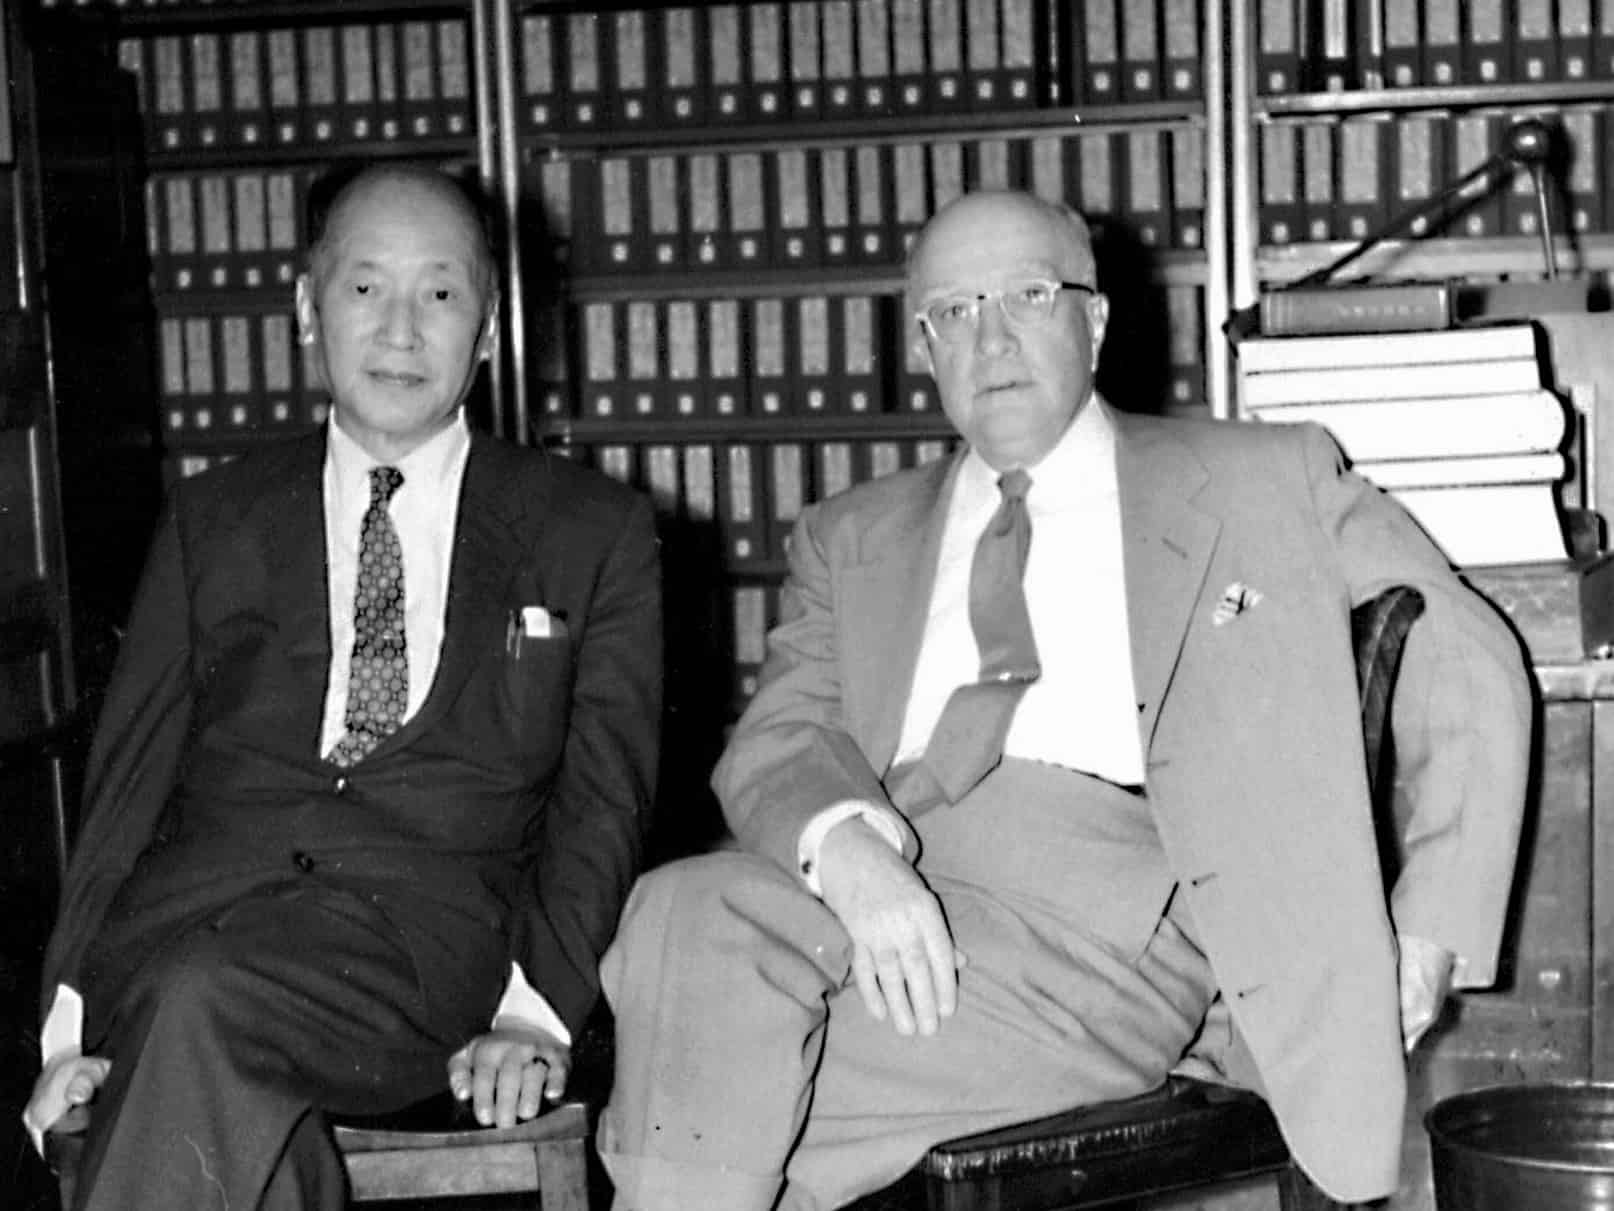 Dr. Arthur W. Hummel with a Chinese Colleague At the Library of Congress